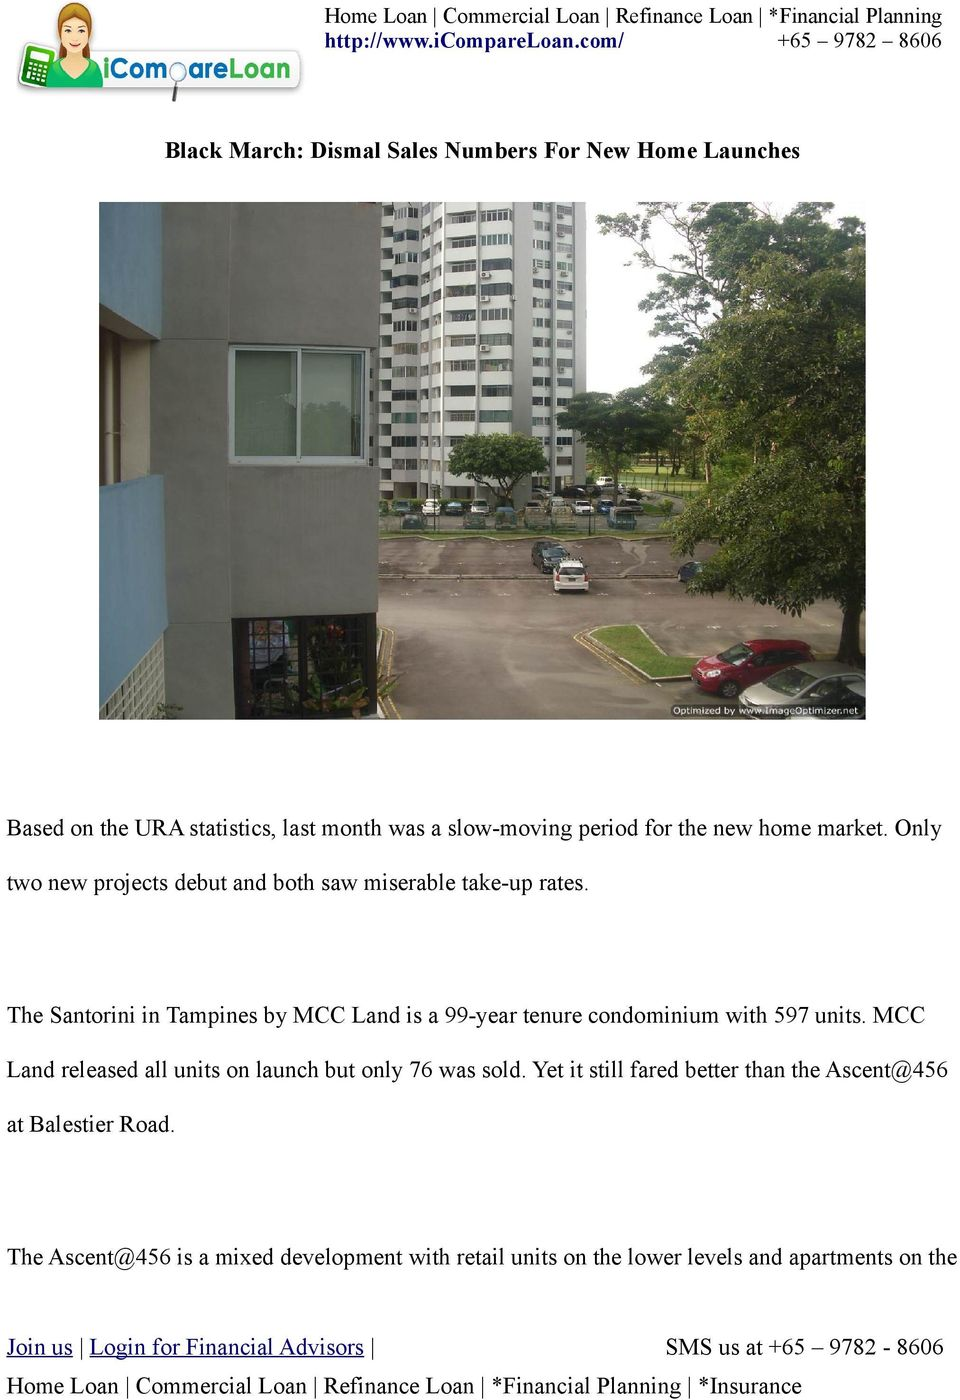 The Santorini in Tampines by MCC Land is a 99-year tenure condominium with 597 units.